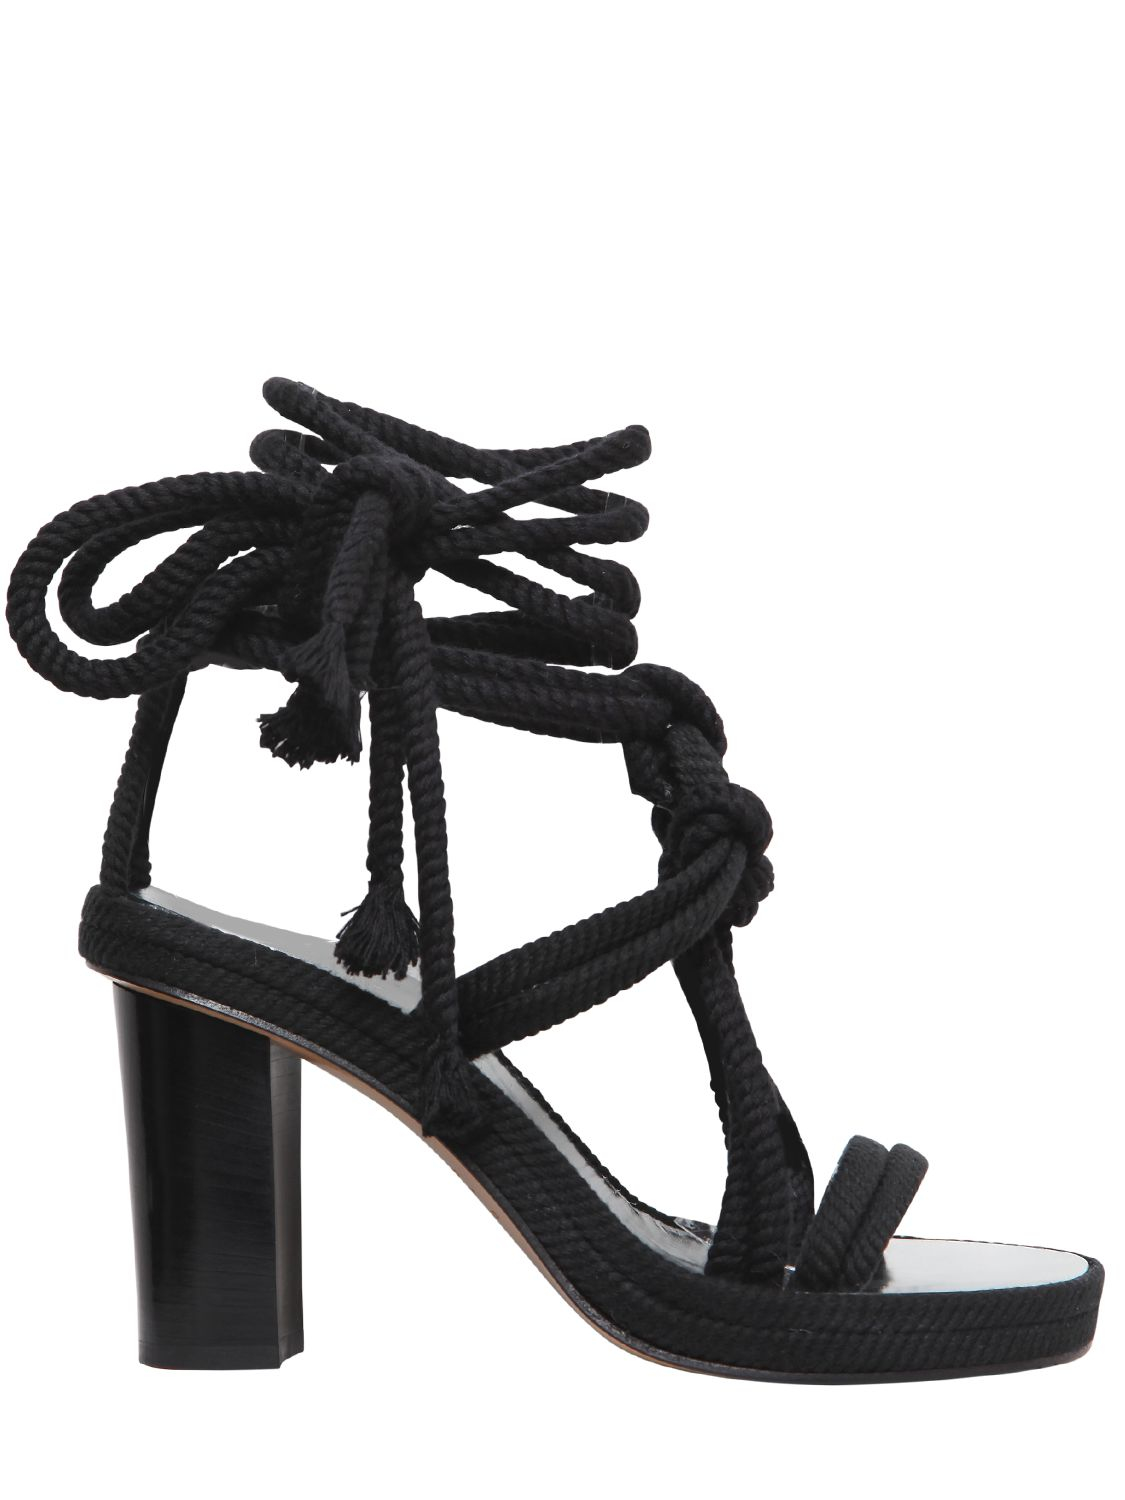 1f78b3a7fadf Isabel Marant 85mm Miana Cotton Rope Wrap Sandals in Black - Lyst